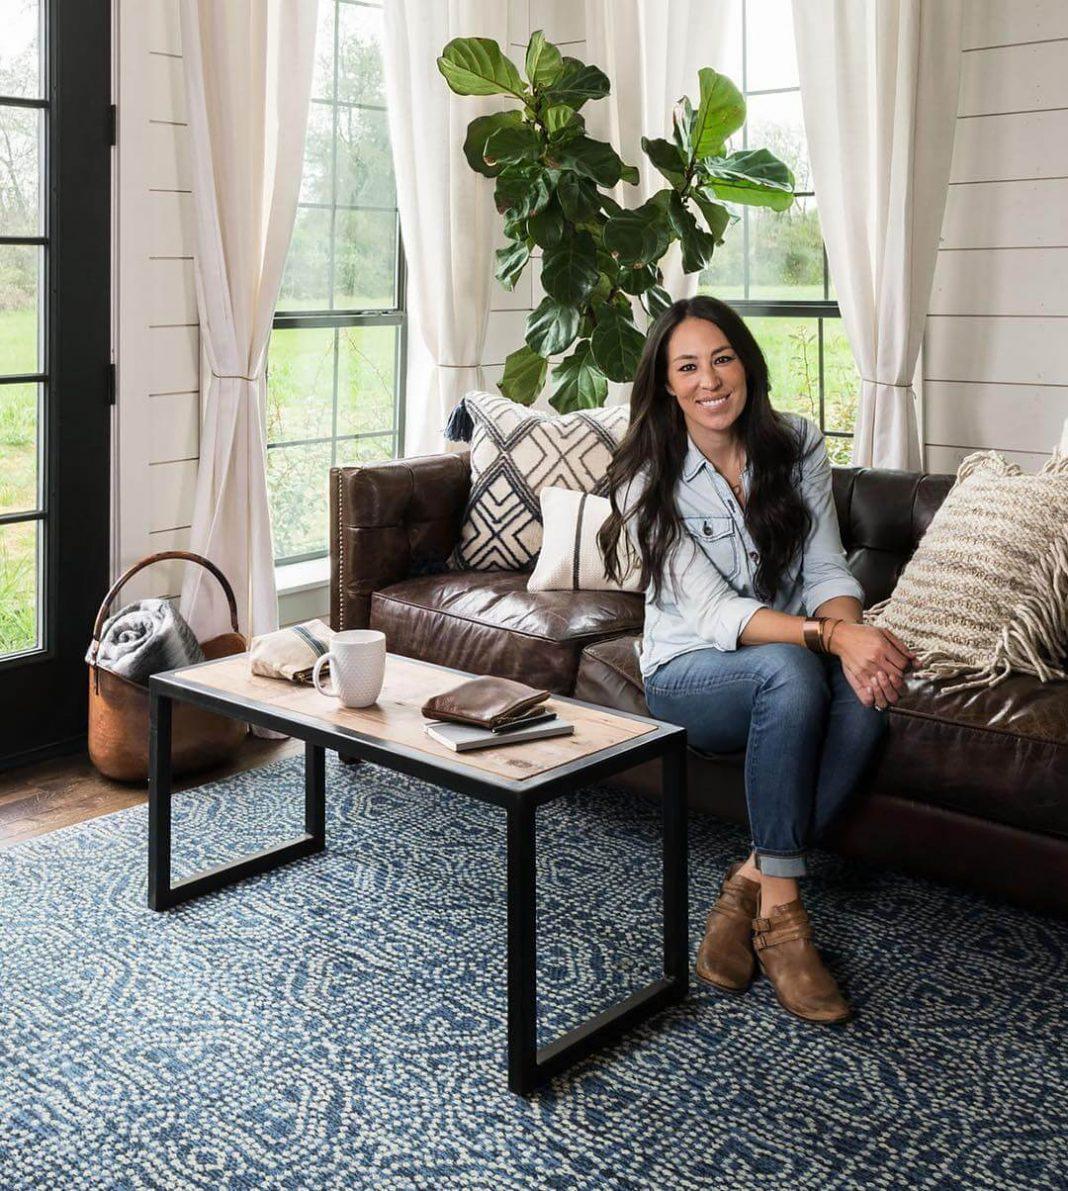 47 Joanna Gaines Sexy Pictures Are Gorgeously Attractive - GEEKS ON COFFEE